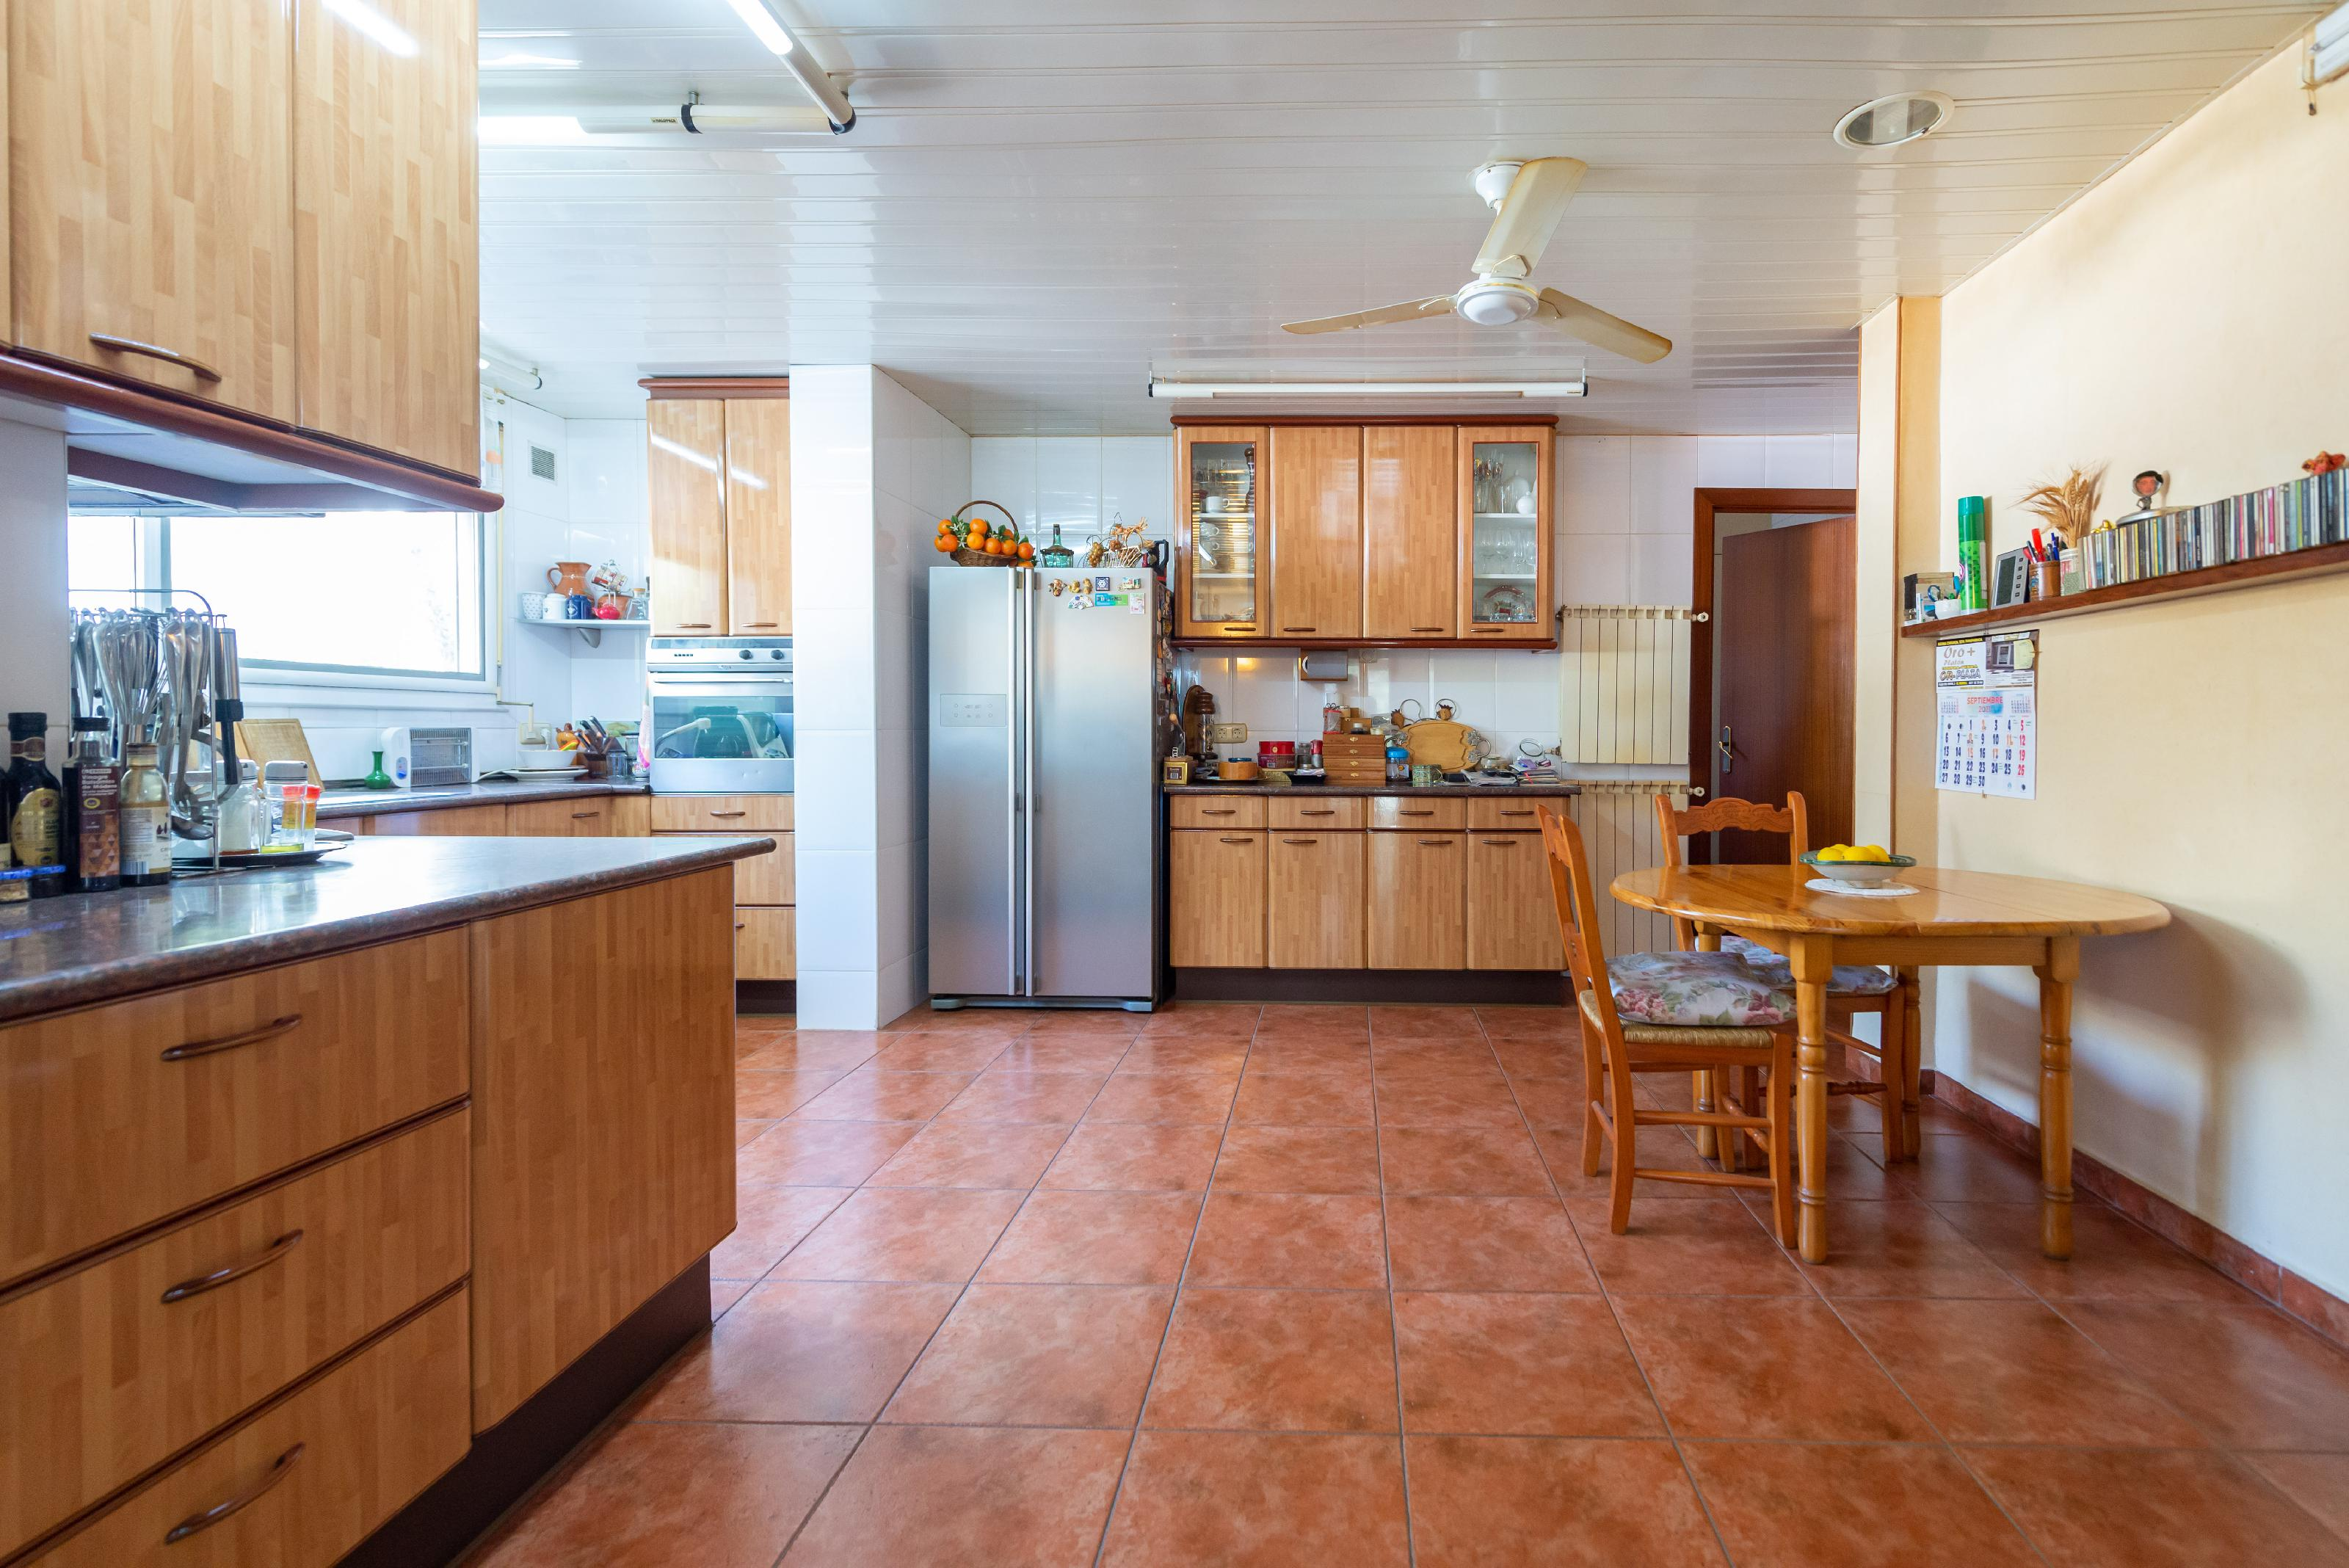 253501 Detached House for sale in Bellamar 19